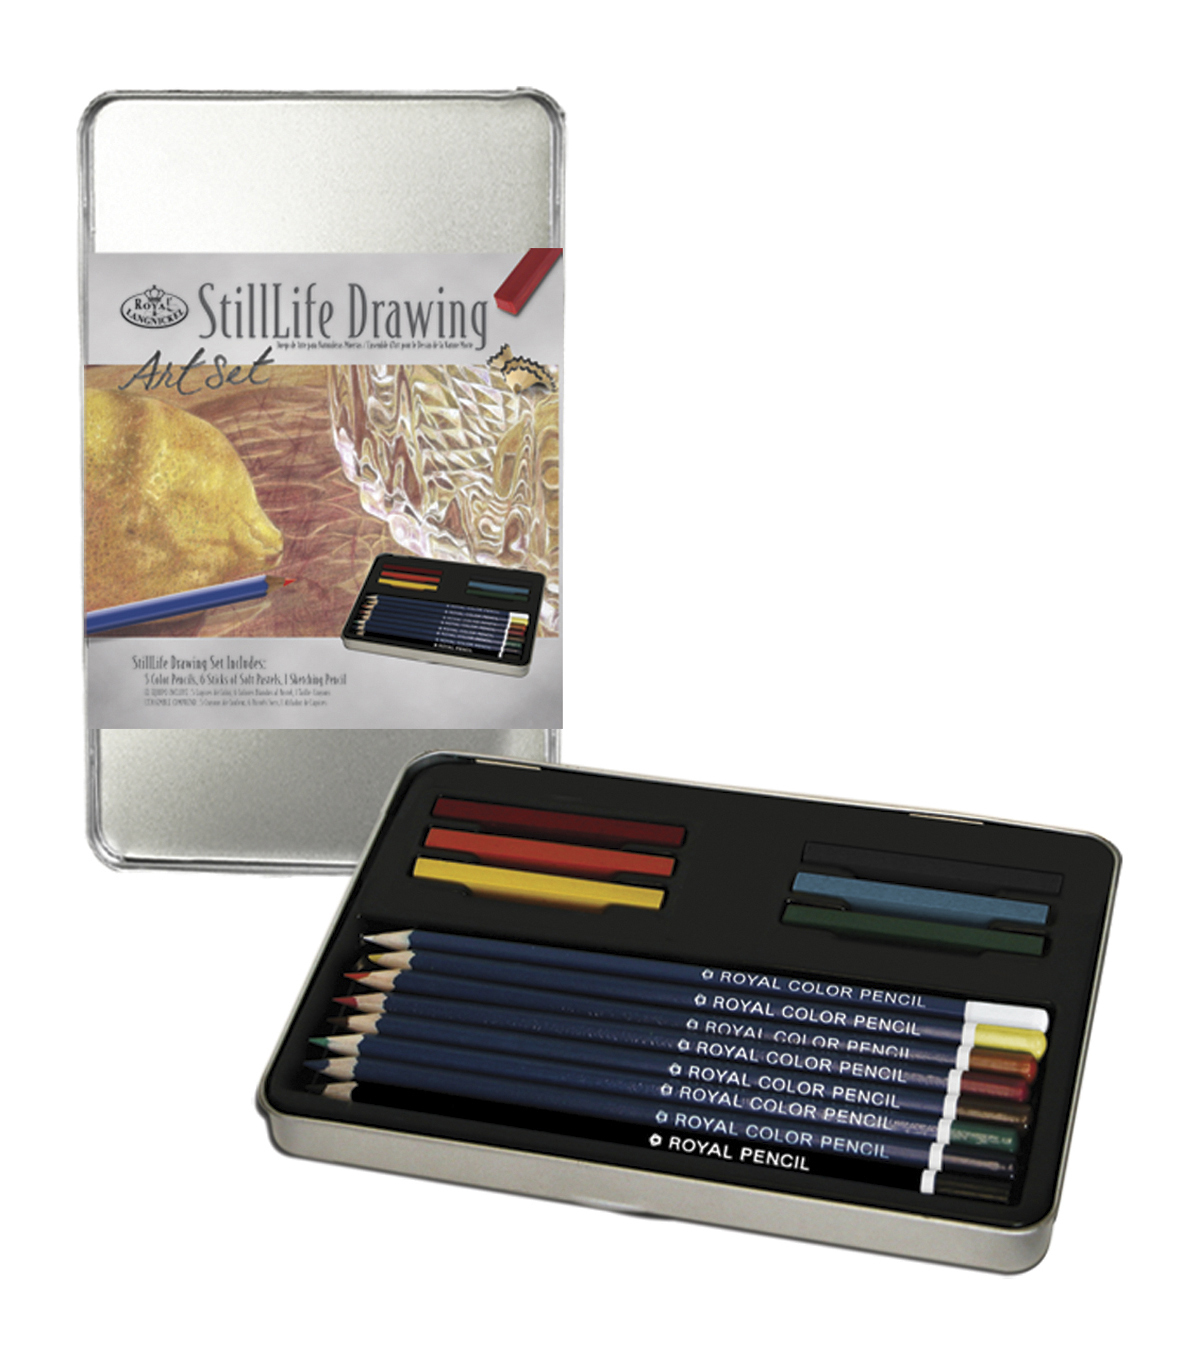 Royal Brush Still Life Drawing Art Set with Tin